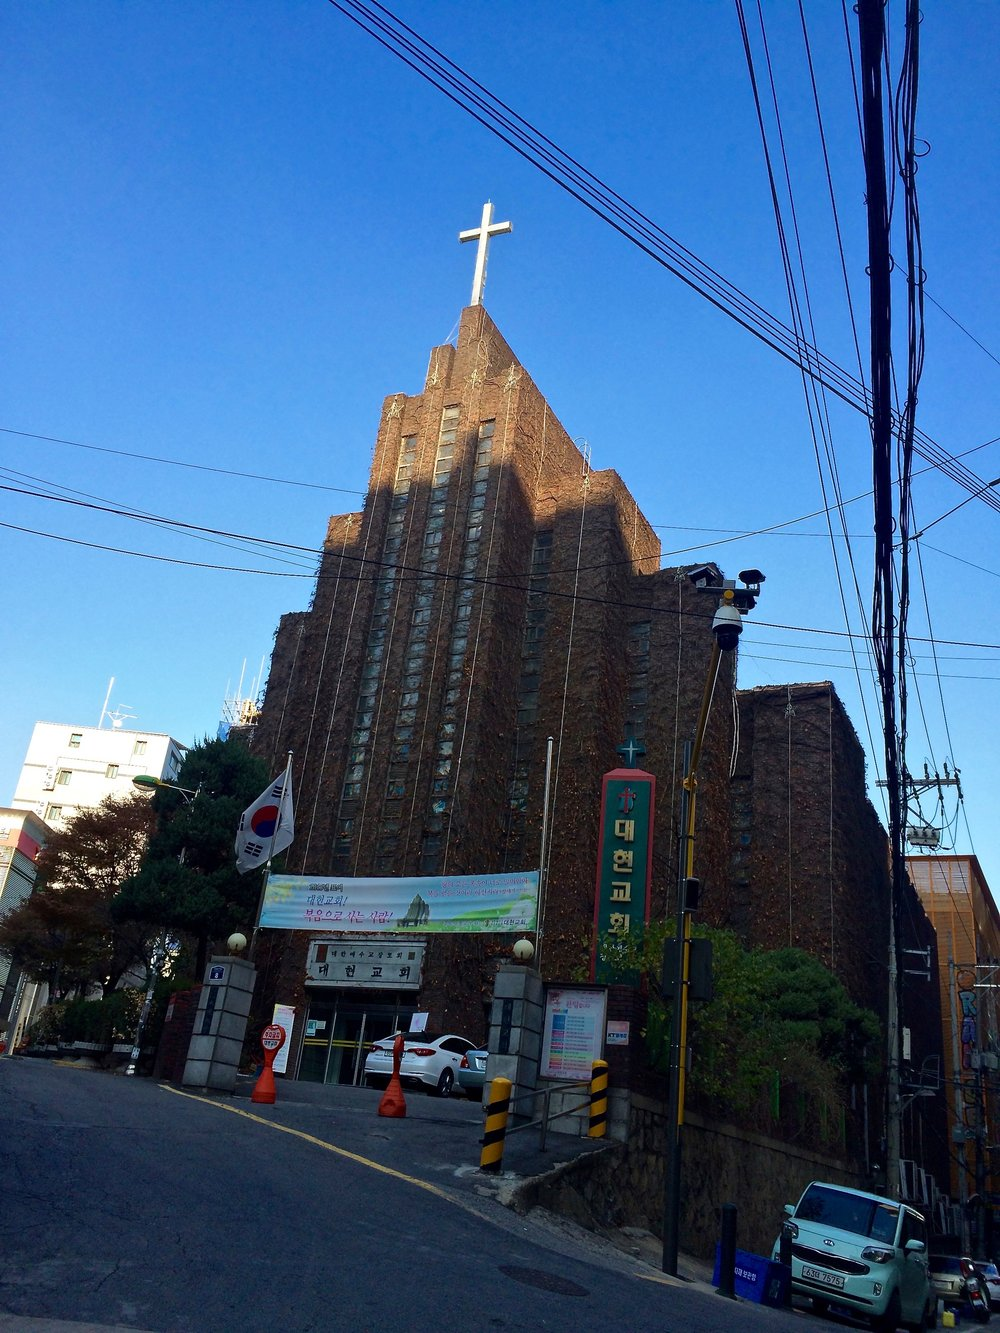 A church in Seoul, South Korea, where christianity is now the leading religion. (C) Remko Tanis